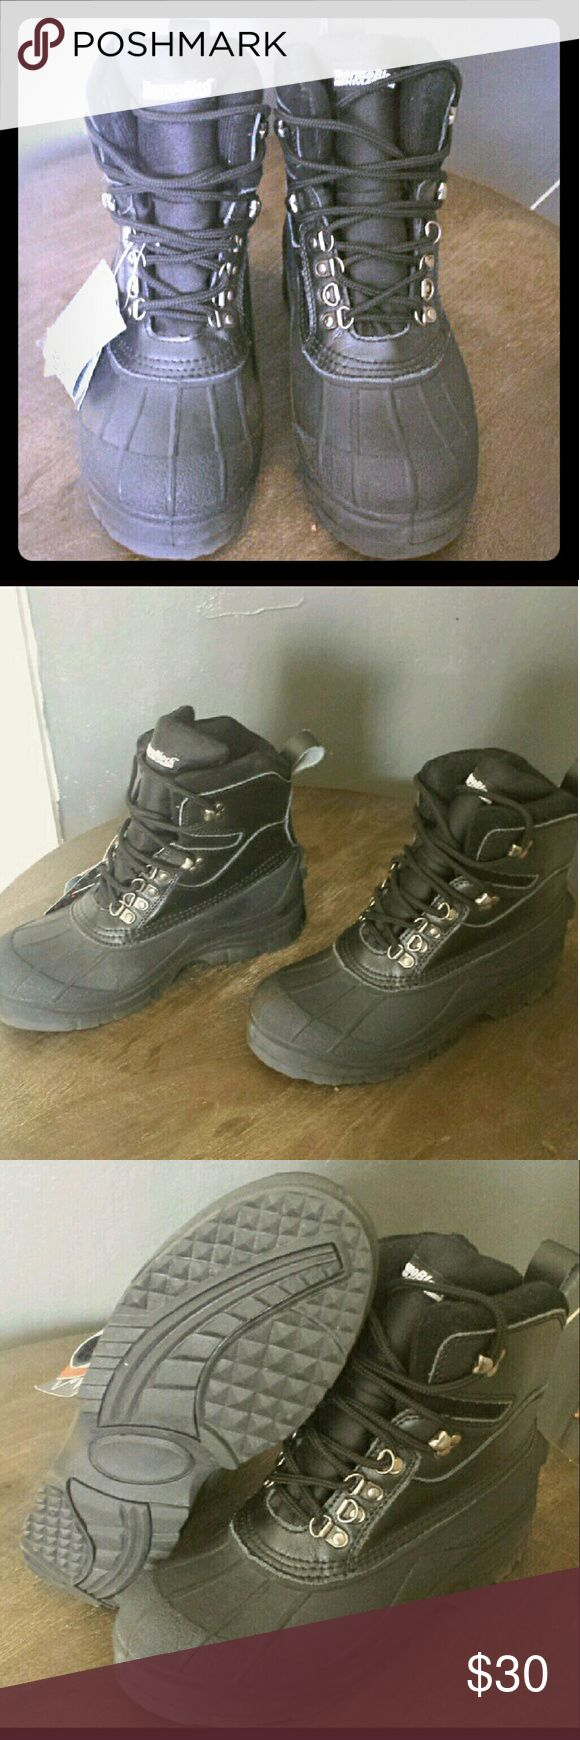 NWT Rothco waterproof winter hiking boots Warm and slip resistance winter work boots, great for hiking in the snow. 100% waterproof with thermoblock insulation. New with tag, never worn was a little too big for my foot. Fits true to size. Mens size 7, womens size 8.5 Rothco Shoes Winter & Rain Boots